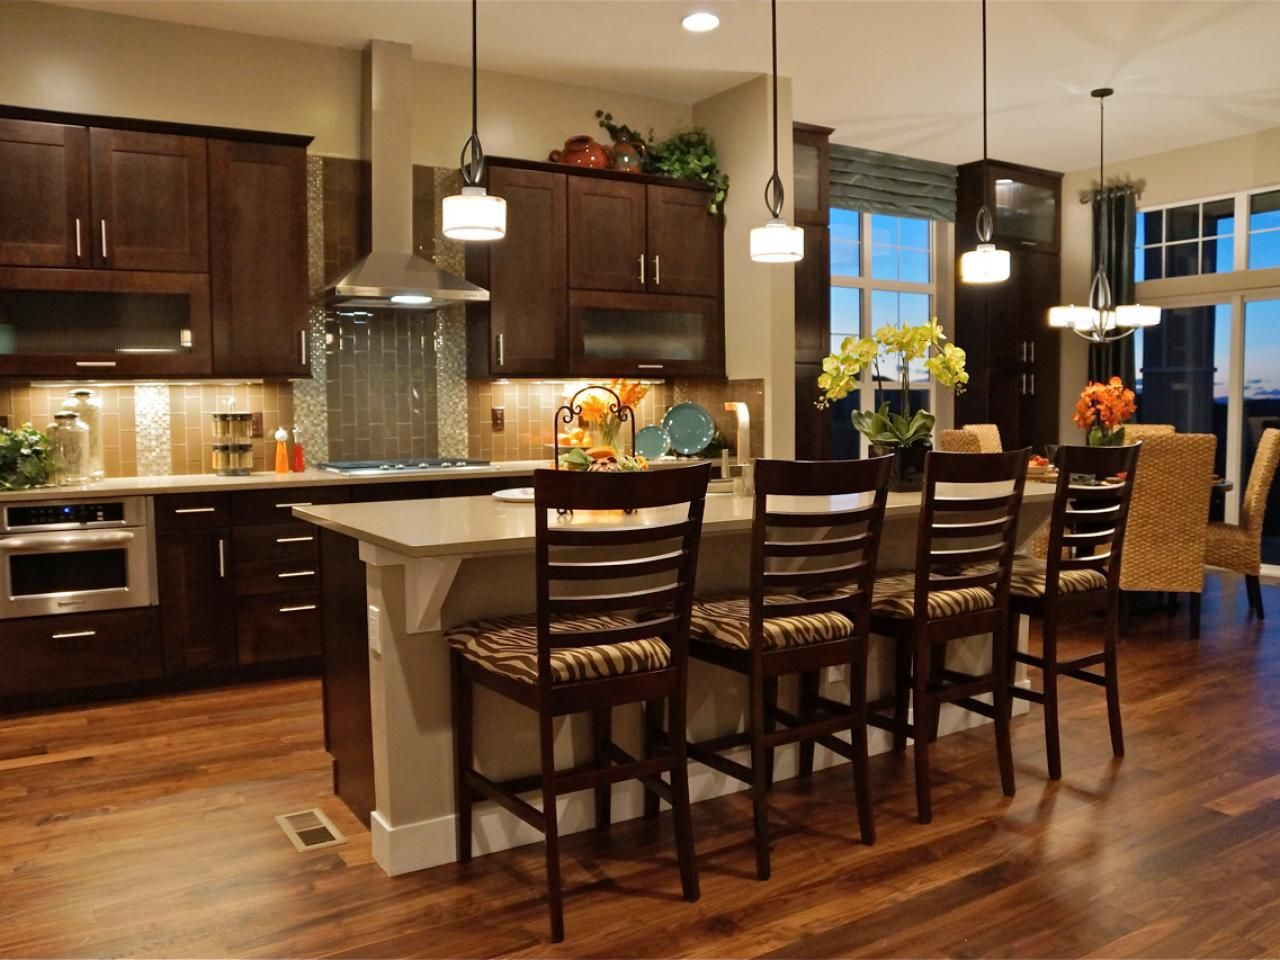 kitchen breakfast bar stools value city sets island pictures ideas and tips from